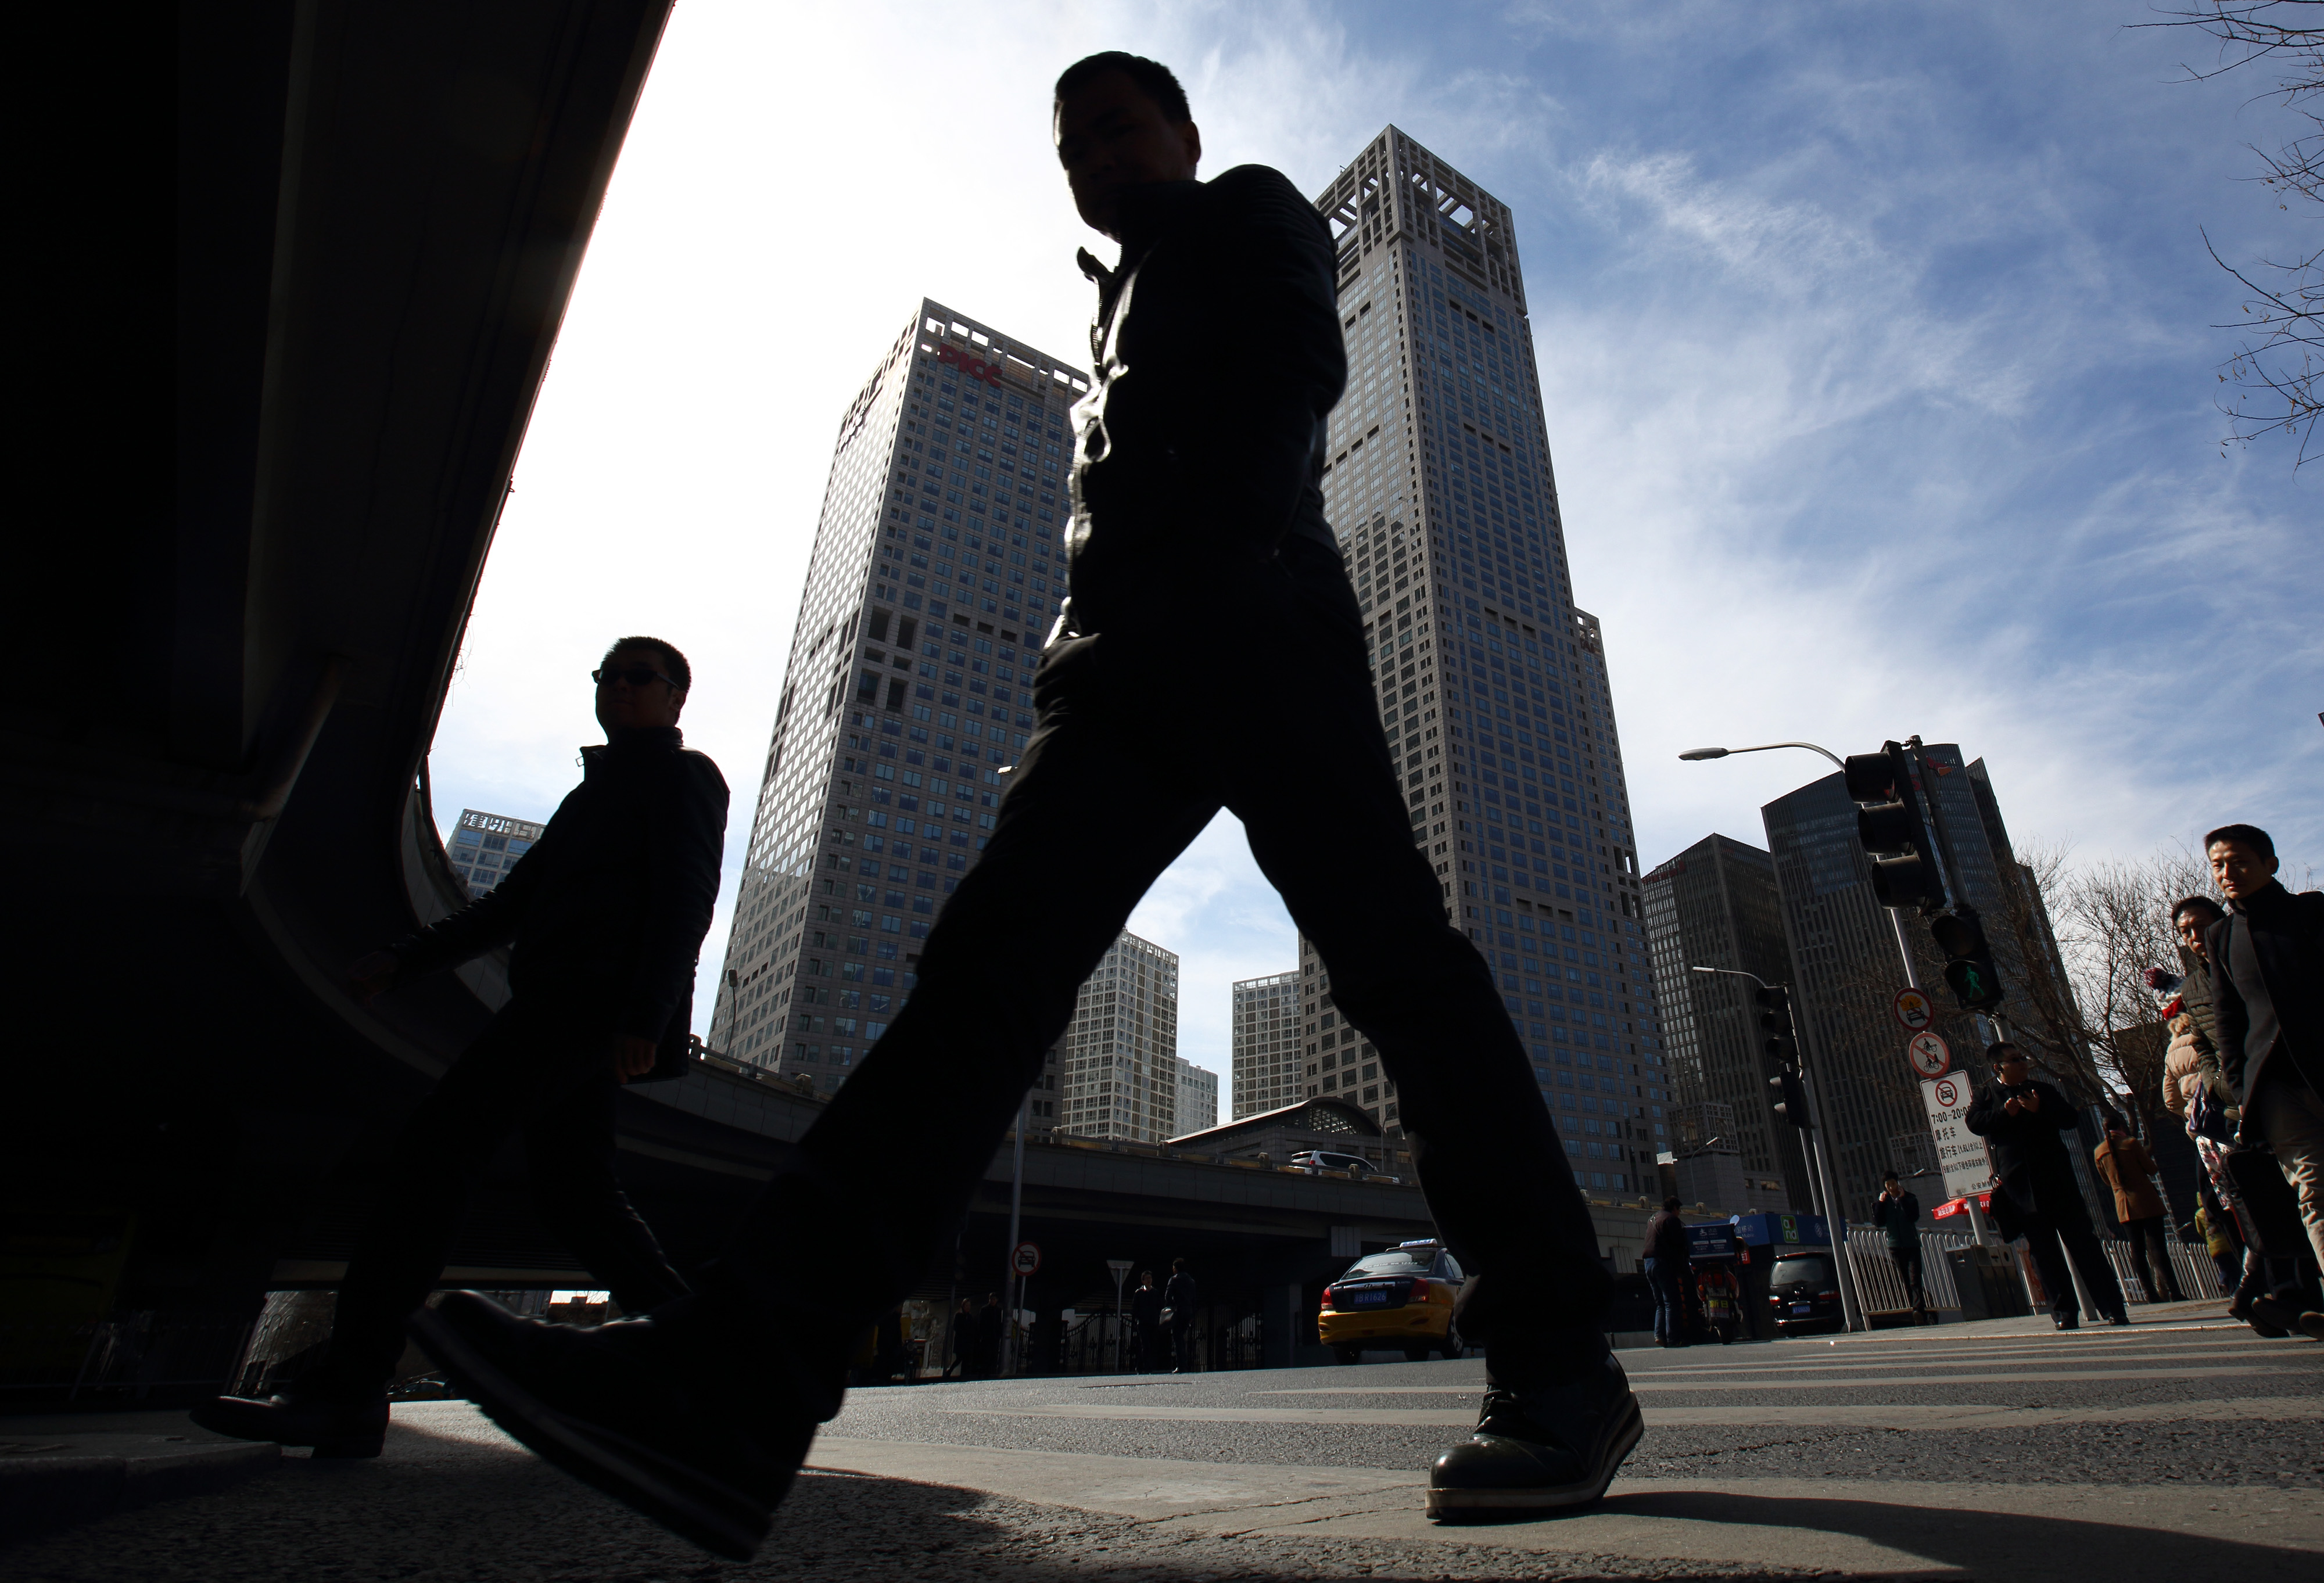 General Images Of China Economy As PBOC Seen Cutting Rates Again